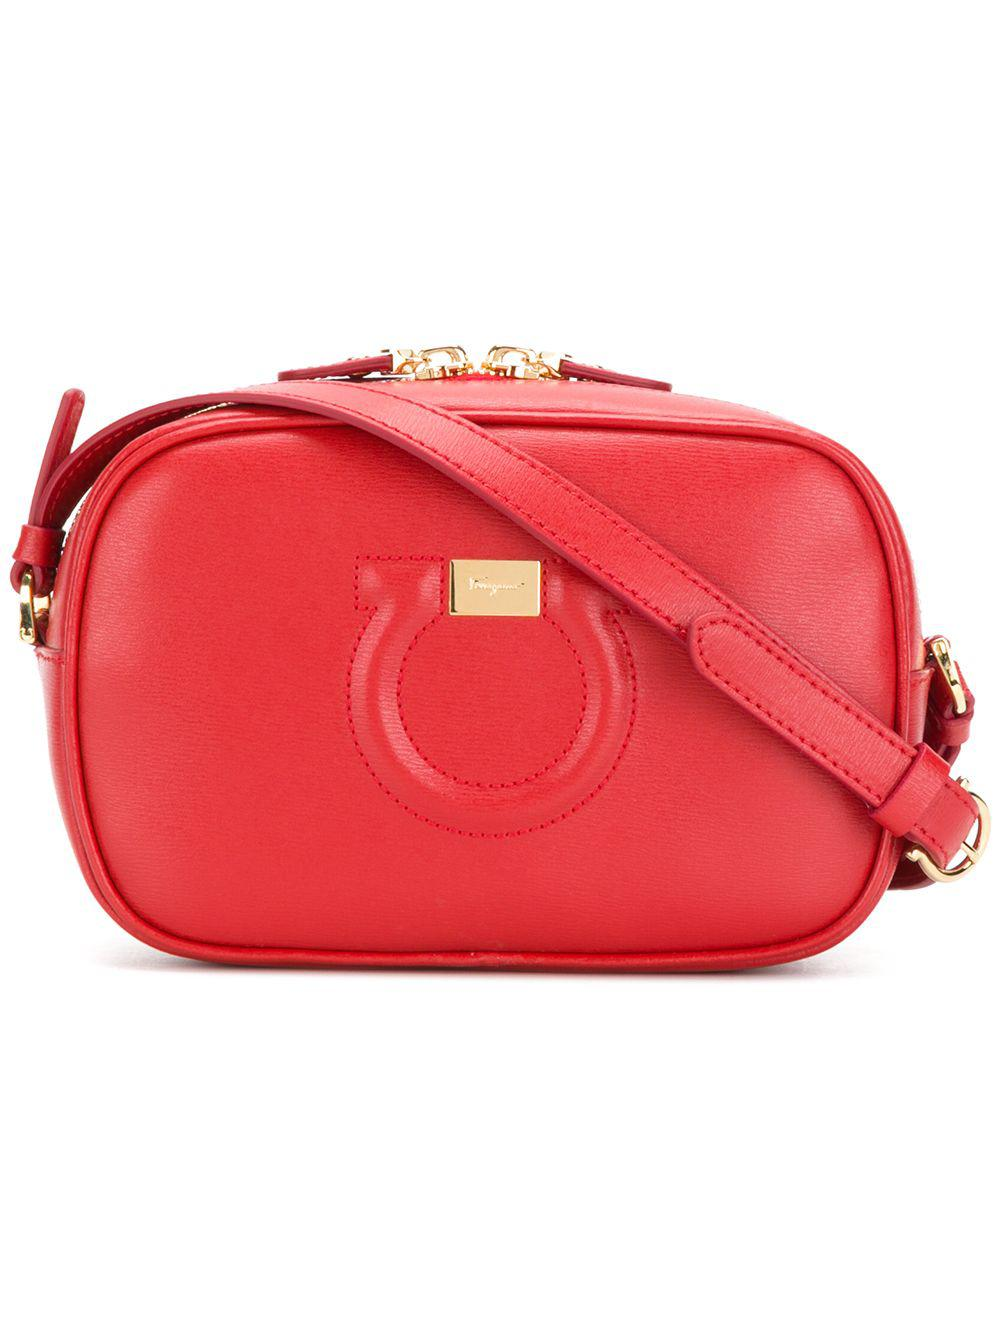 3a861ea48f Ferragamo City Goncho Leather Shoulder Bag in Red - Save ...